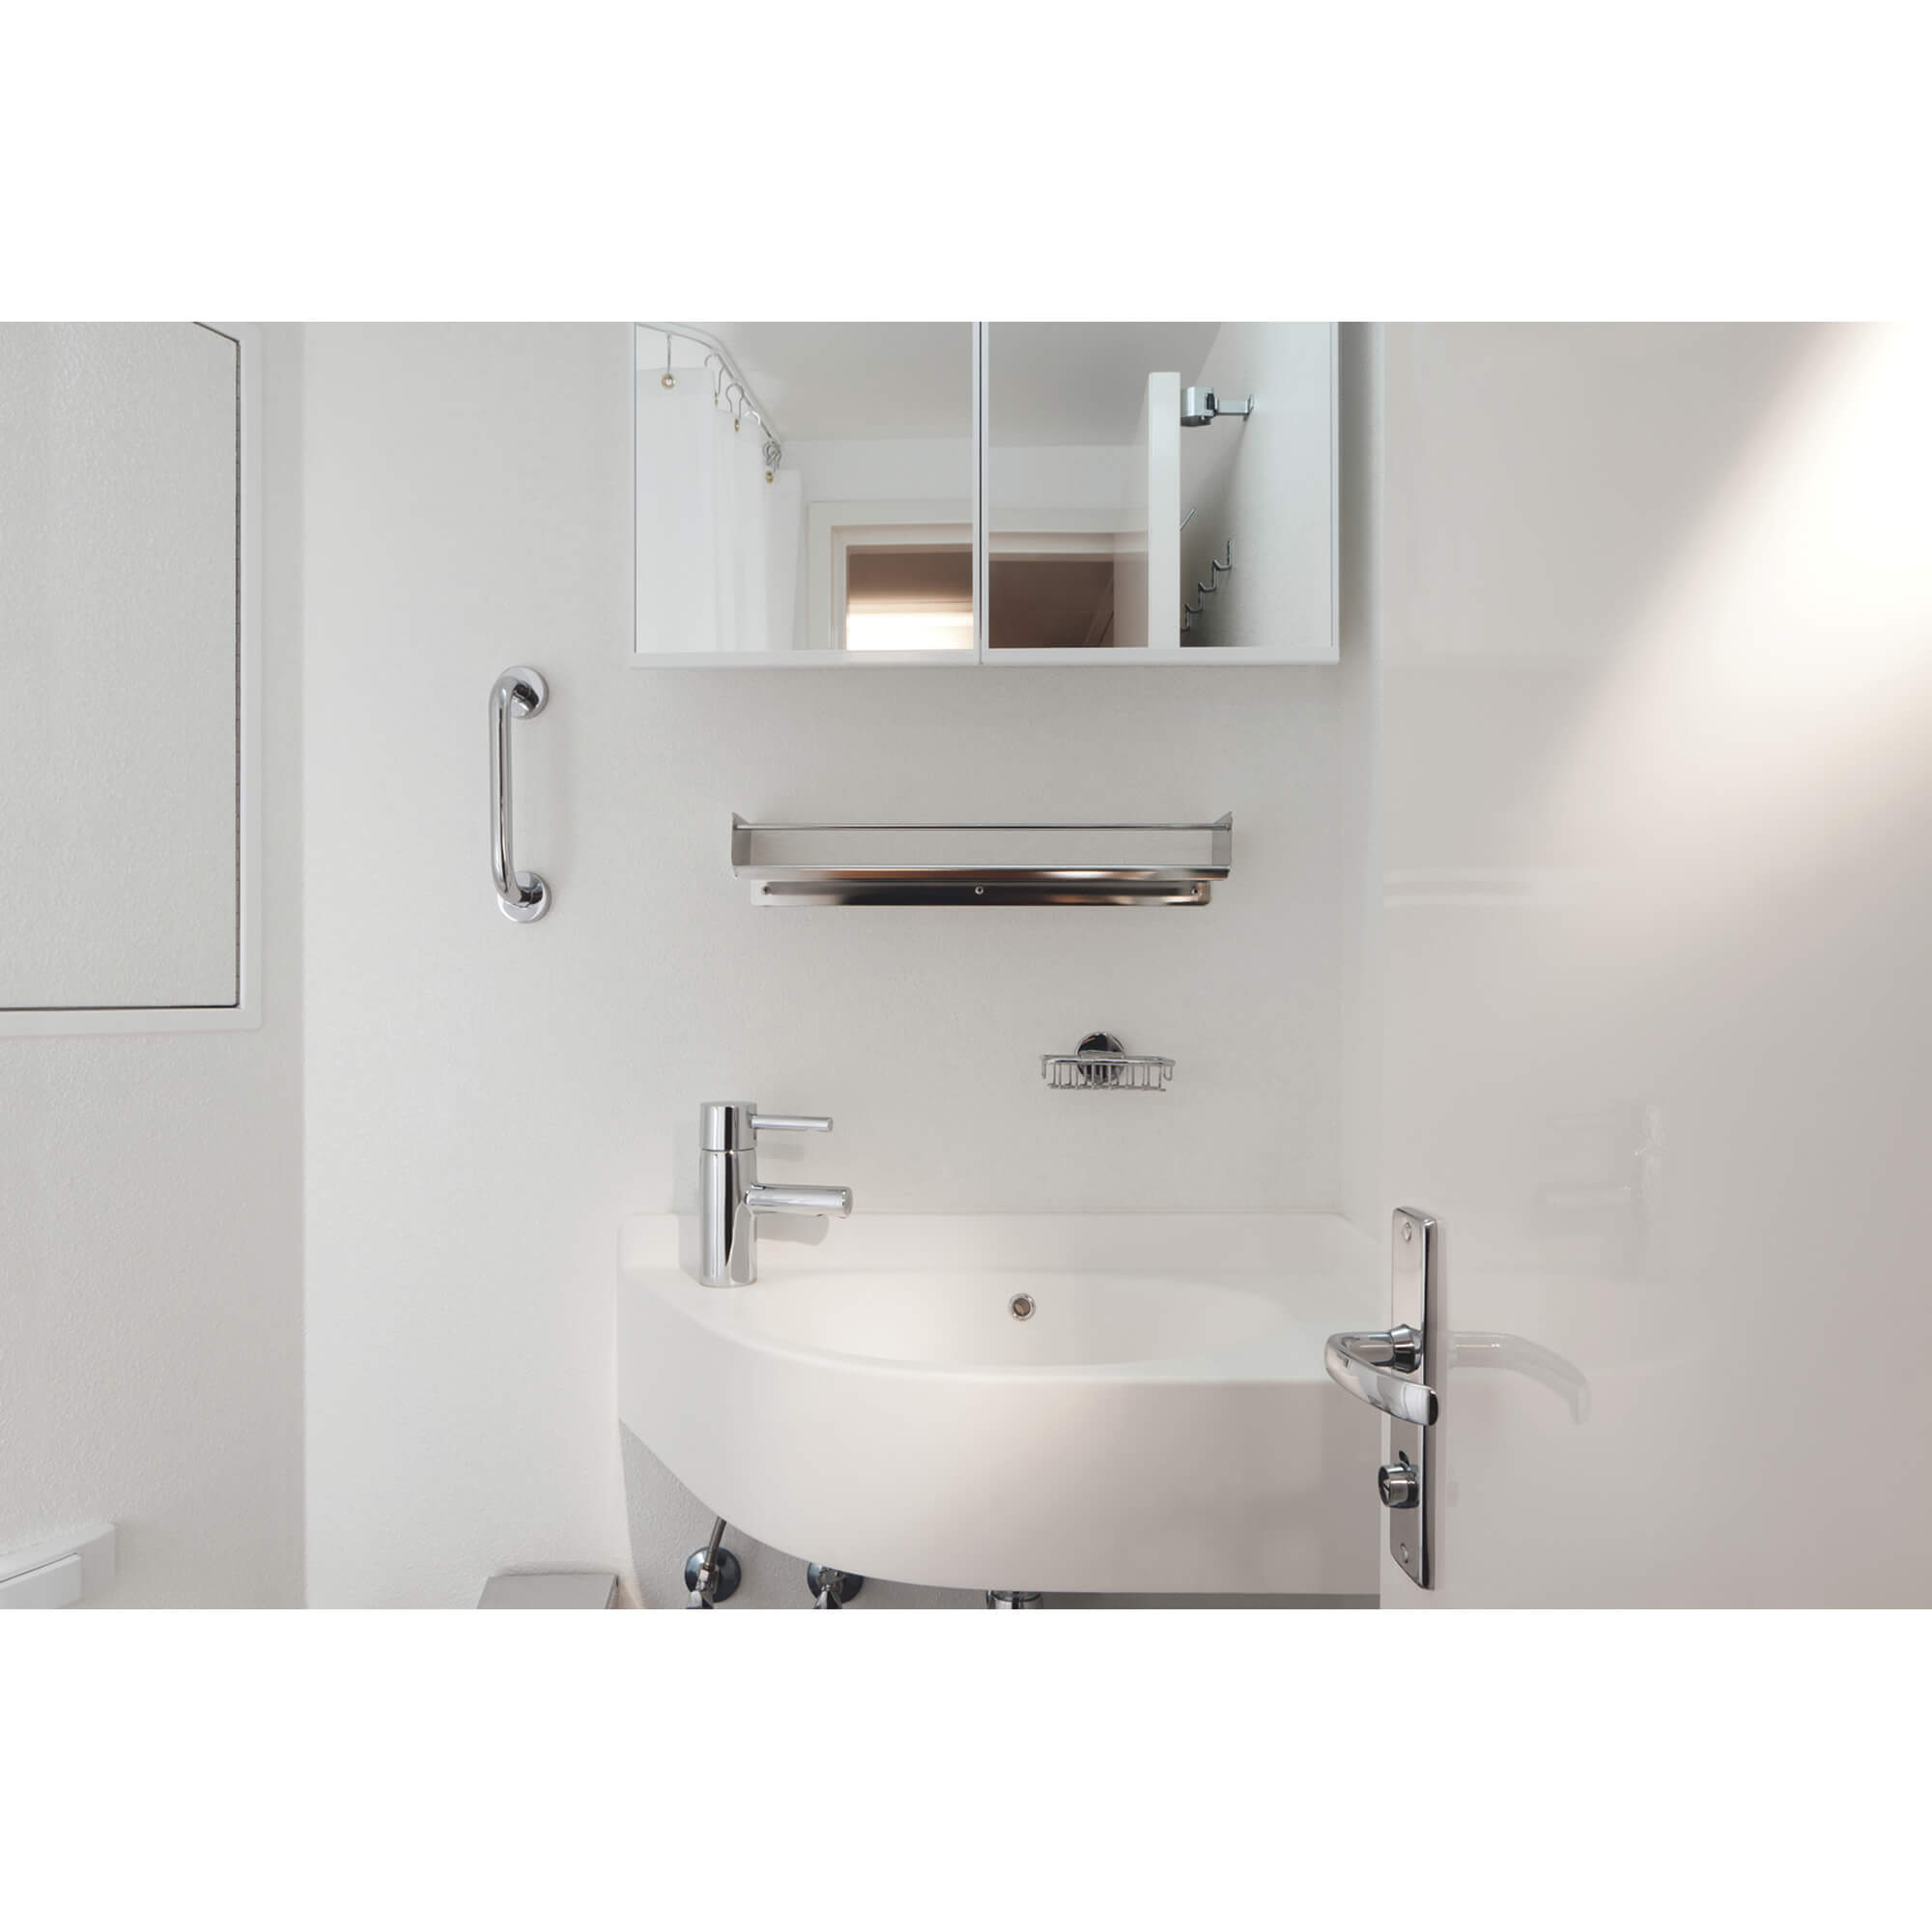 Bath Grip GROHE CHROME